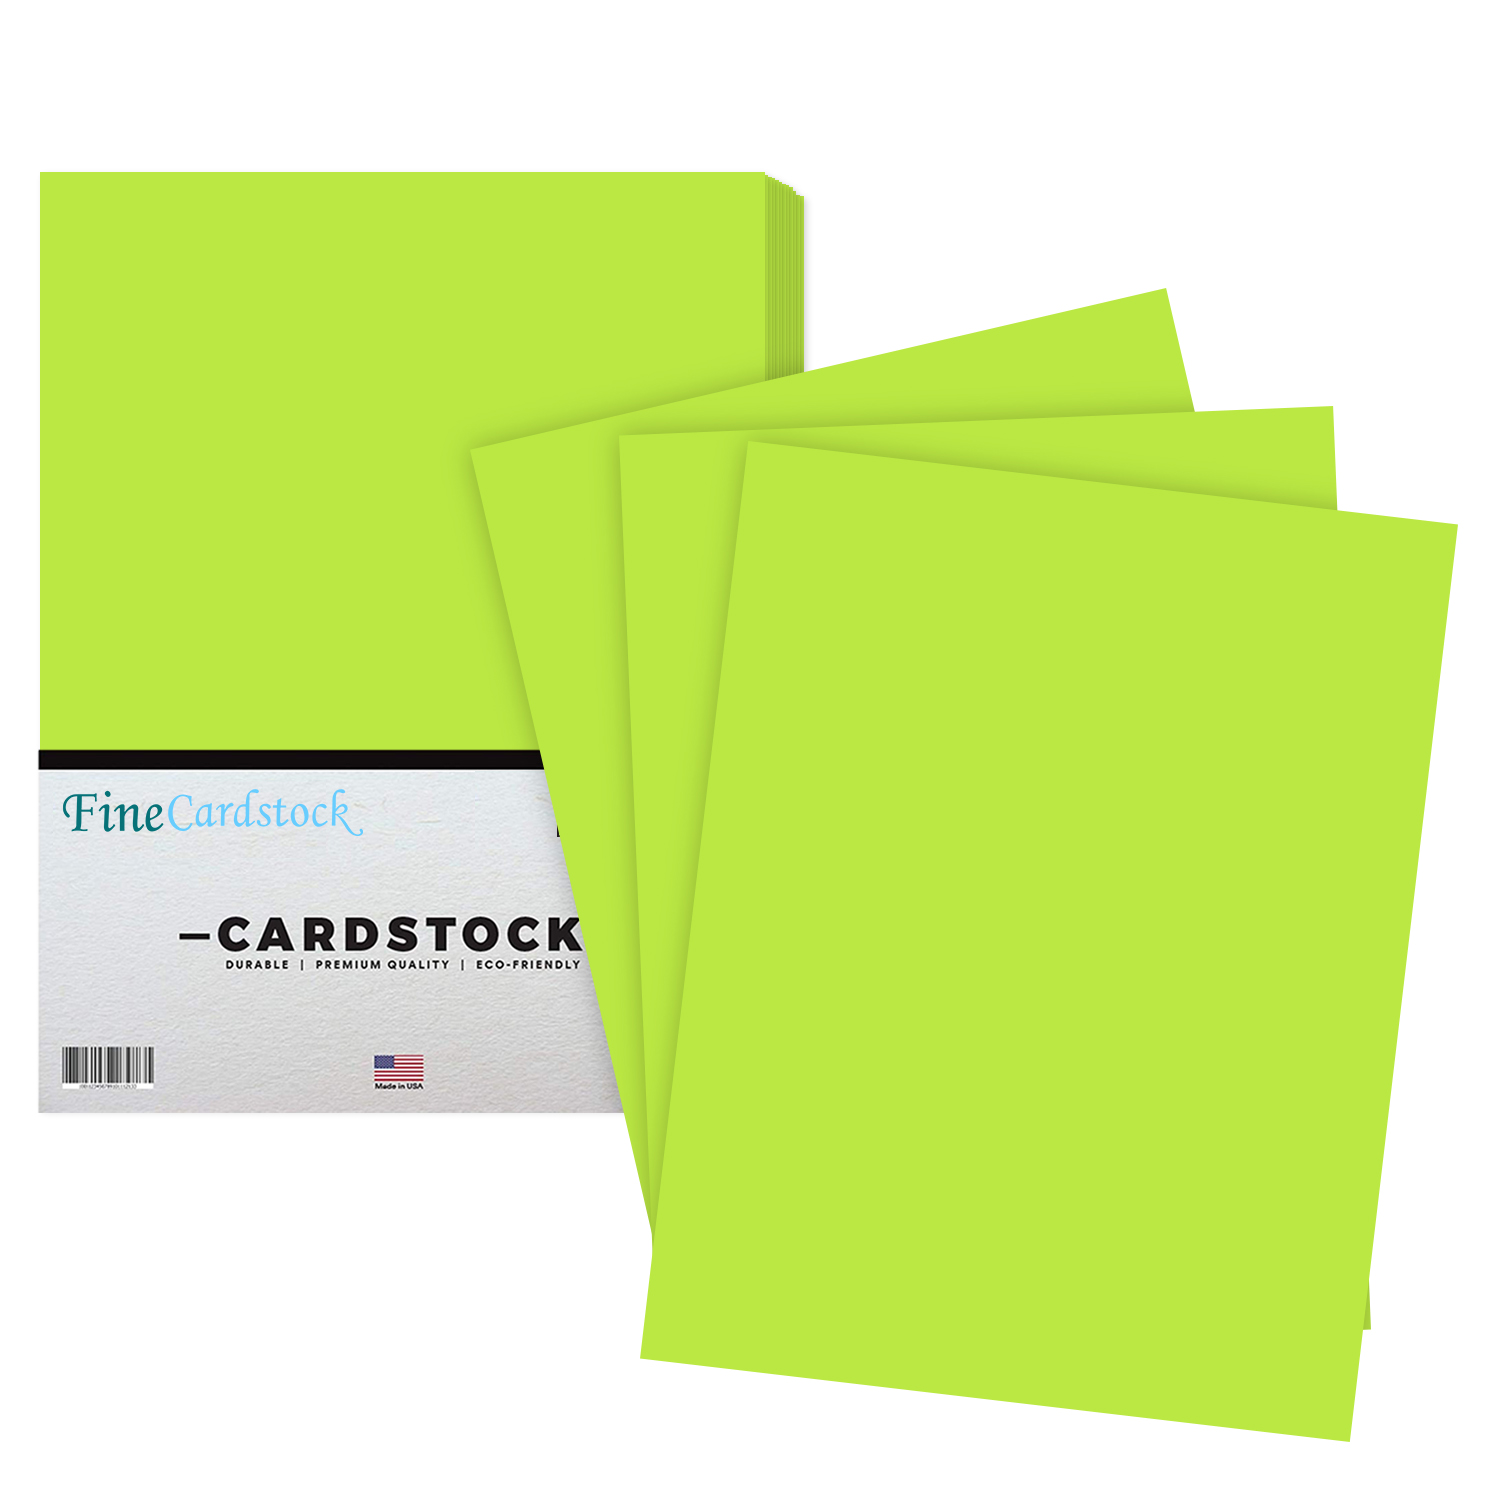 8 1/2 x 11 Color Cardstock